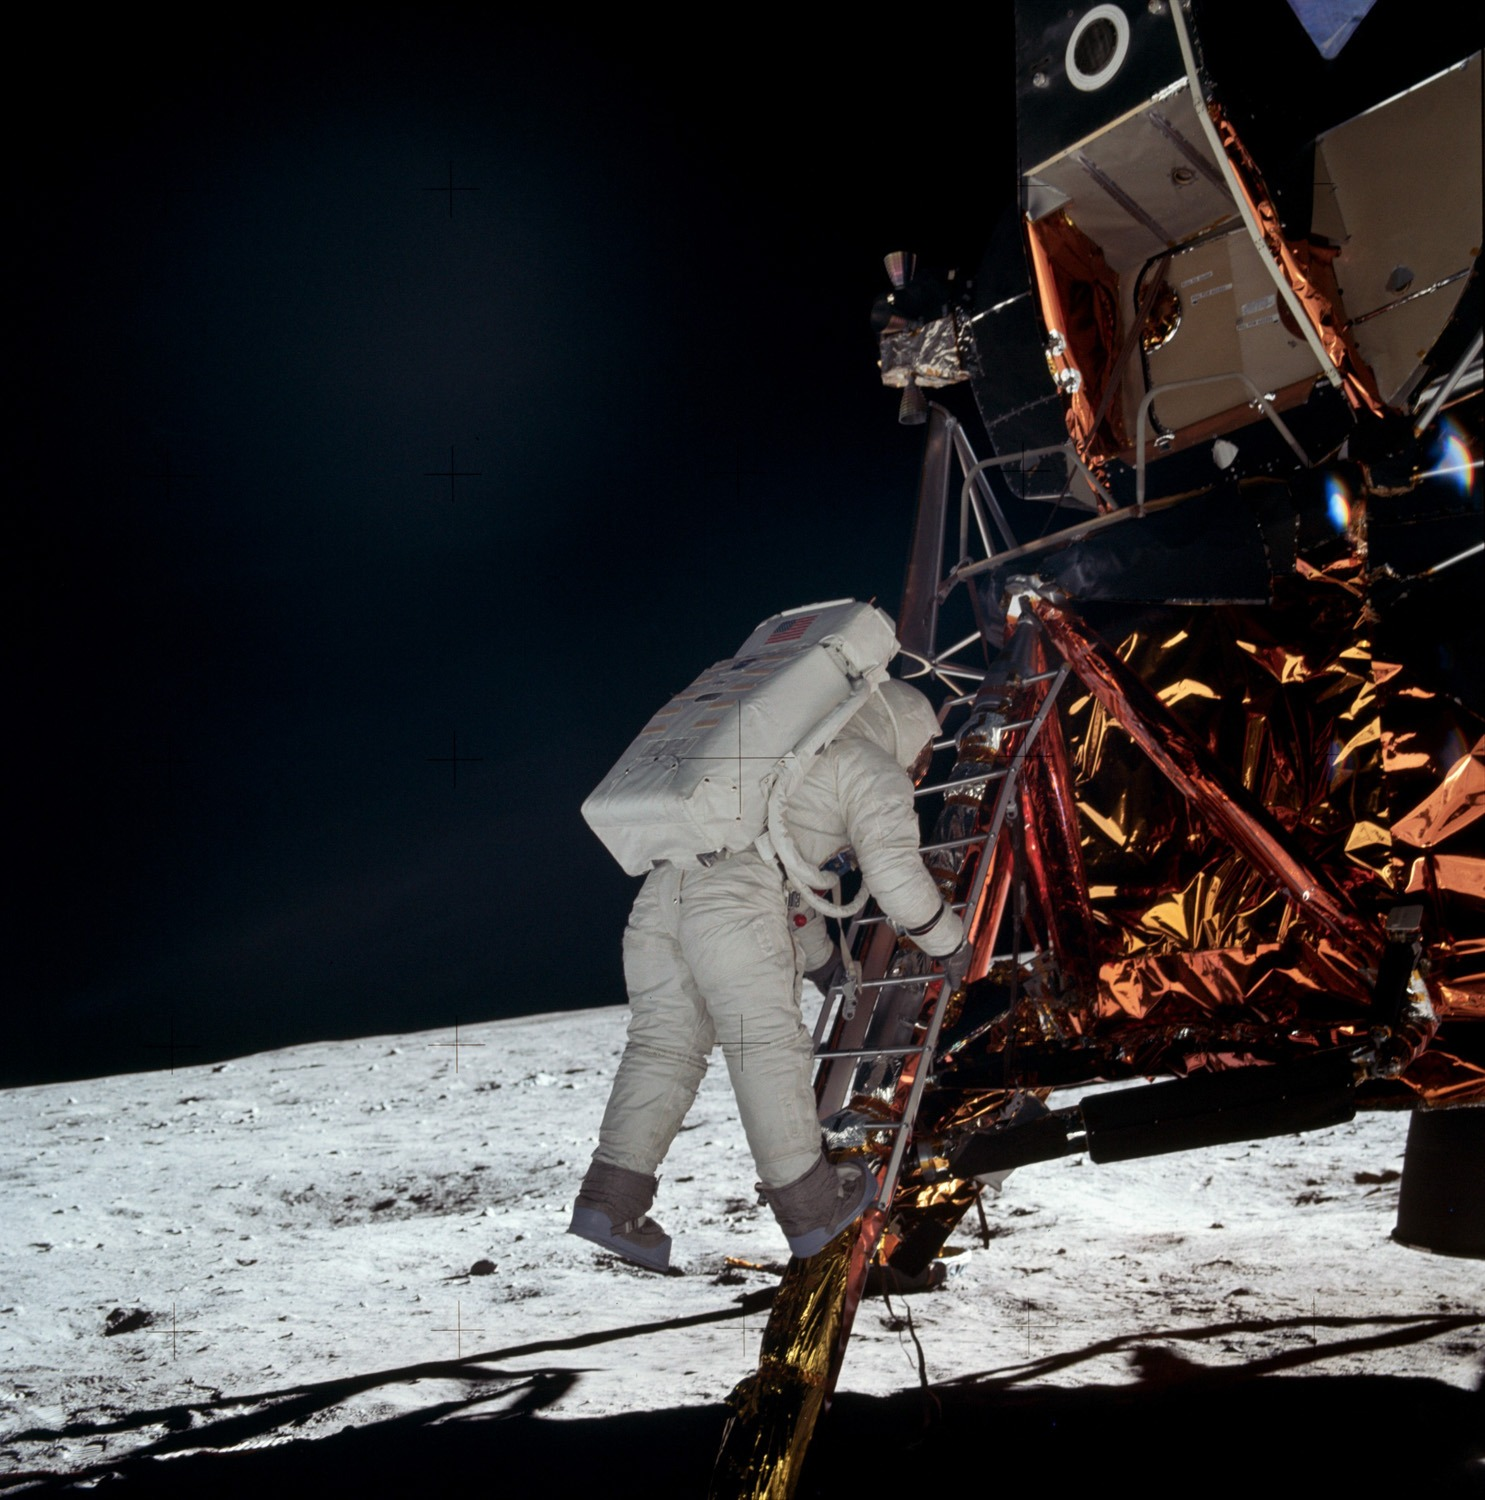 Aldrin descends to the surface from the Lunar Module. Credit: Neil Armstrong, NASA ID: AS11-40-5868